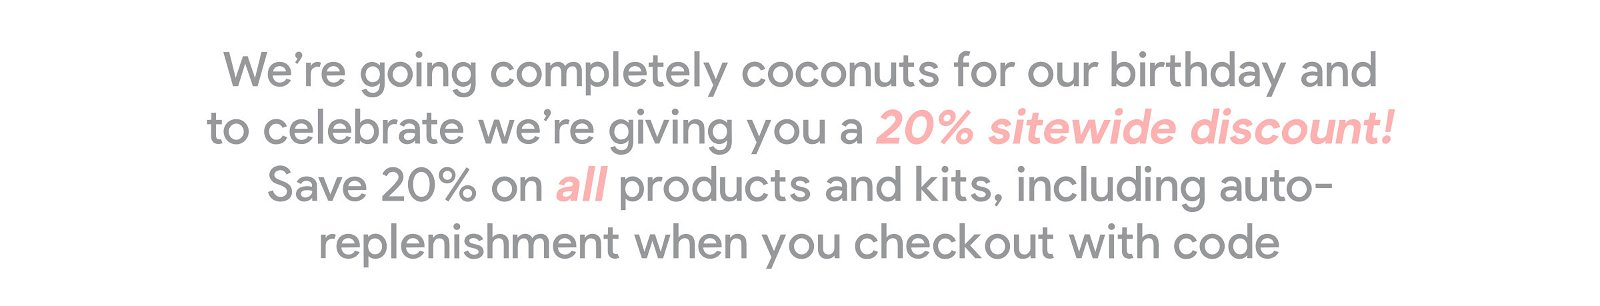 We're going completely coconuts for our birthday and to celebrate we're giving you a 20% sitewide discount! Save 20% on all products and kits, including auto-replenishment, when you checkout with code COCONUTCAKE